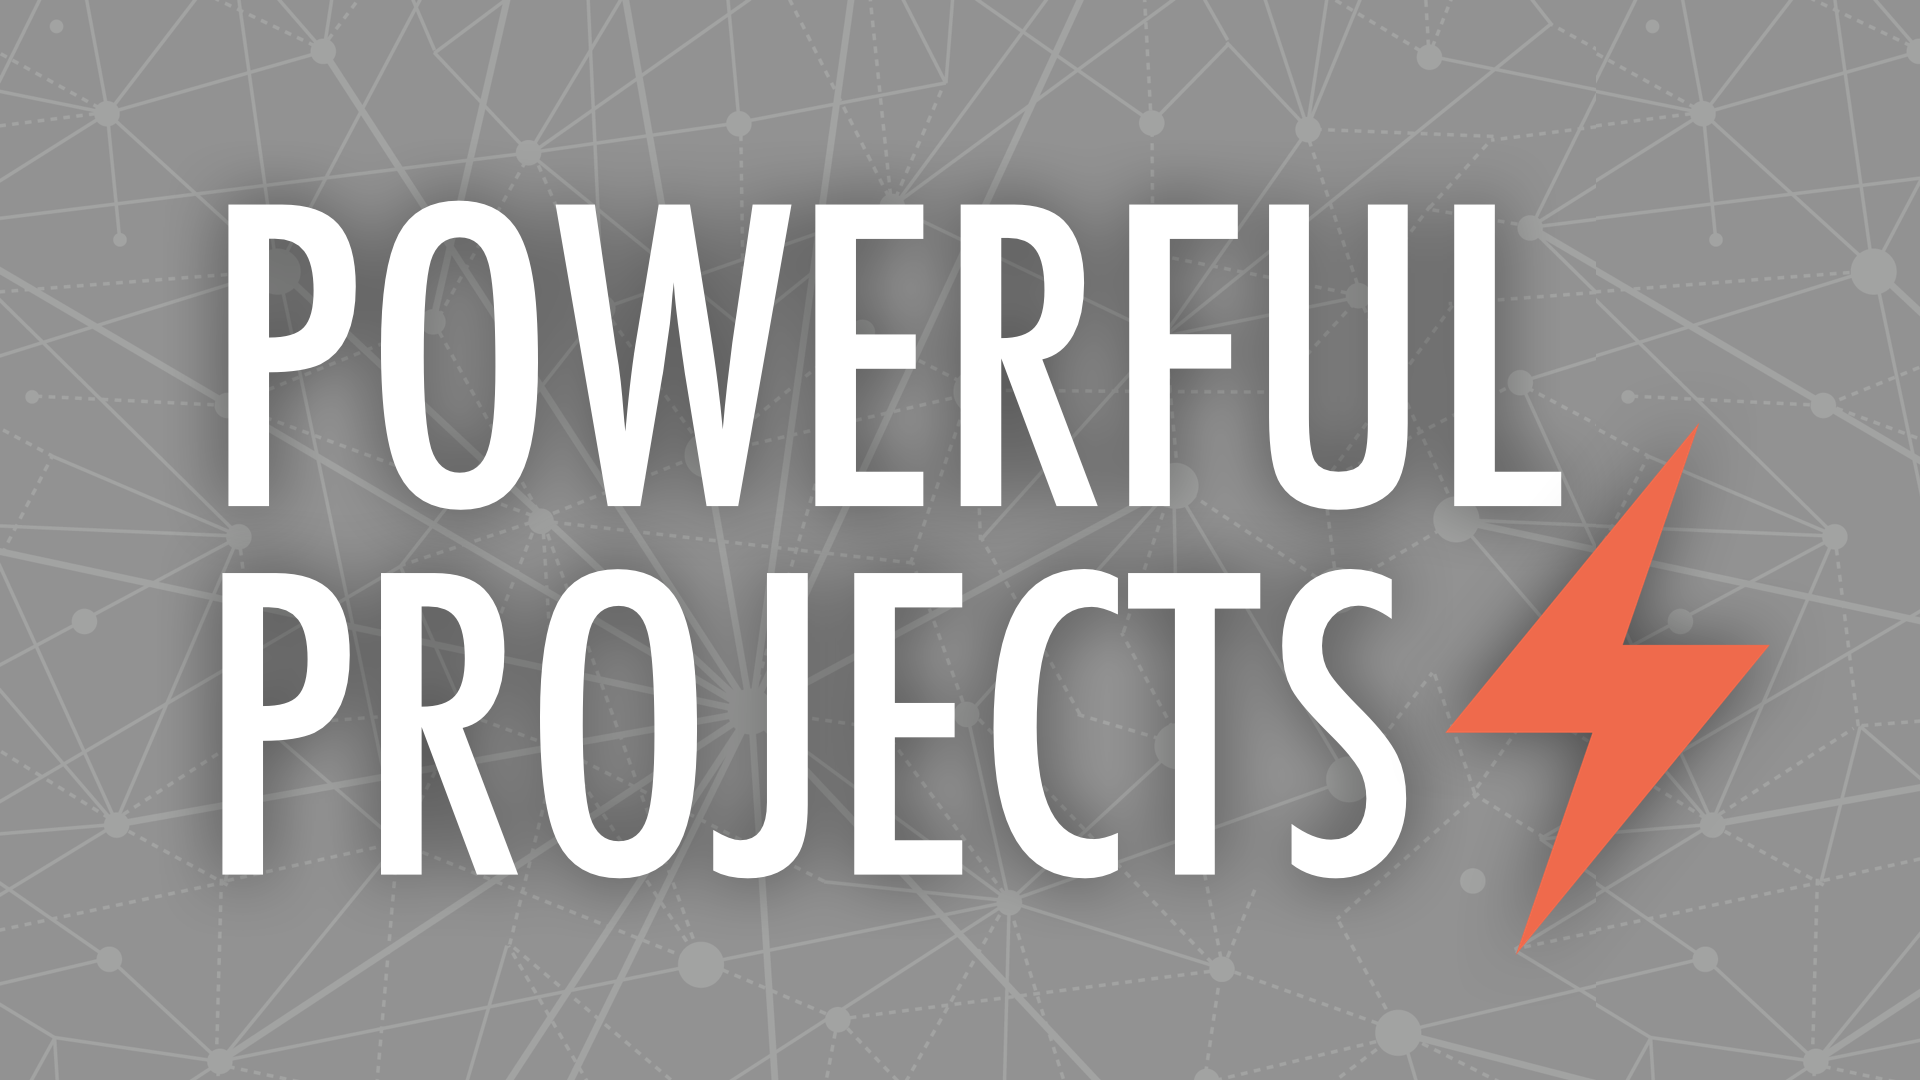 Powerfu Projects - Learning Through Projects - Project-Based Learning